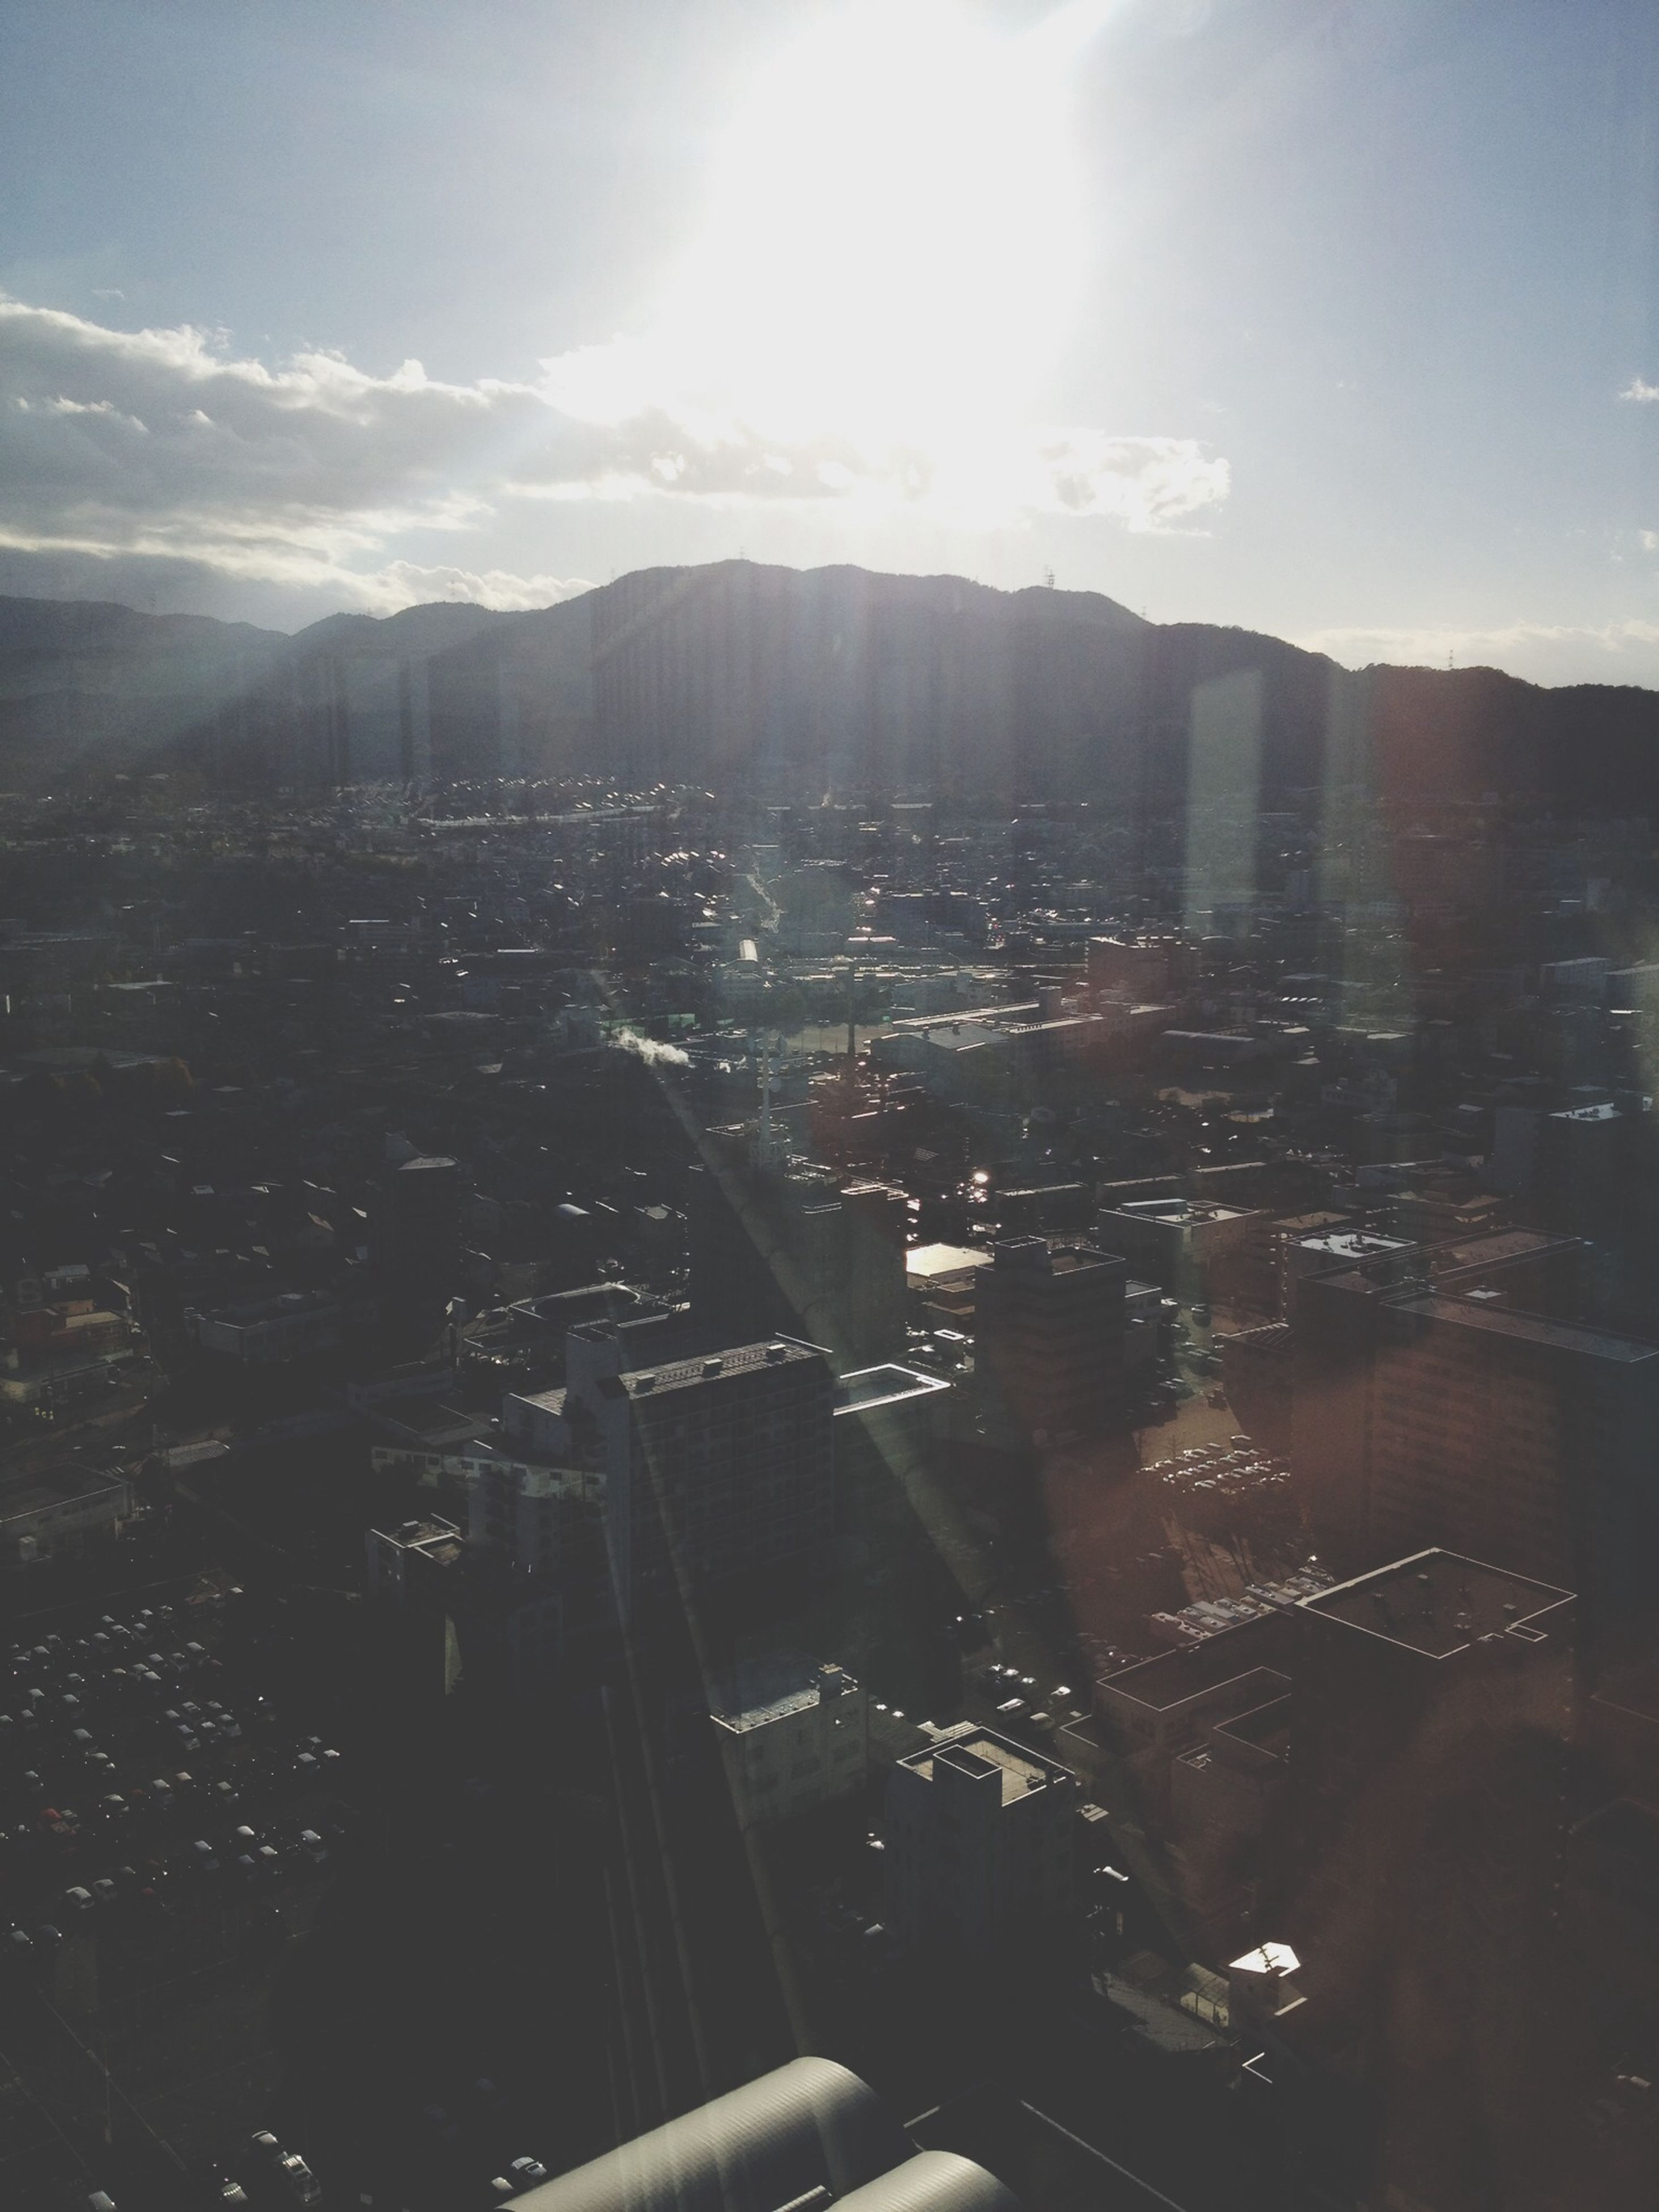 sunbeam, sun, building exterior, sunlight, sky, built structure, lens flare, architecture, cityscape, city, mountain, cloud - sky, high angle view, sunny, crowded, day, residential district, outdoors, aerial view, residential building